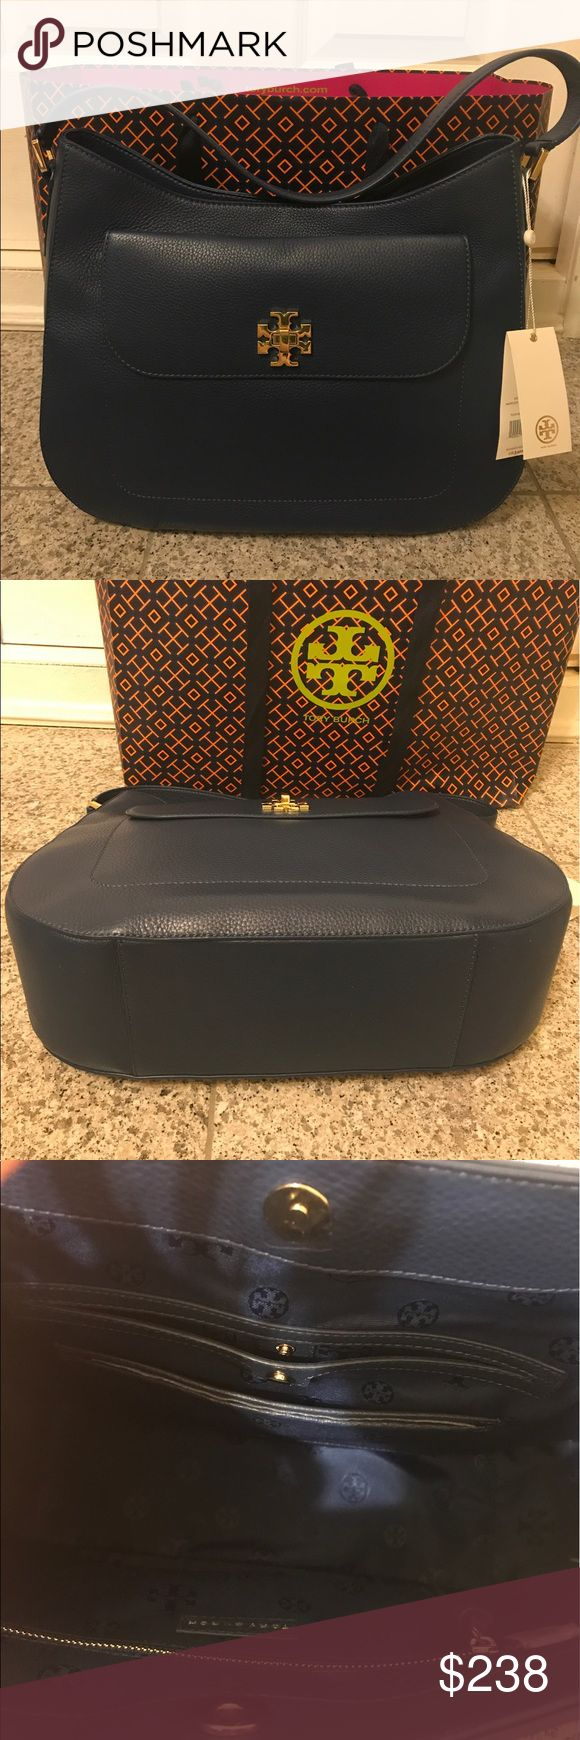 "TORY BURCH MERCER SLOUCHY HOBO BAG TIDAL WAVE BLUE Blue pebbled leather (TIDAL WAVE) Gold-tone hardware Leather hobo shoulderstrap with 8.5"" drop Turnlock closure Interior zippered pocket, snap pocket and two slip pockets Tory Burch Bags Hobos"